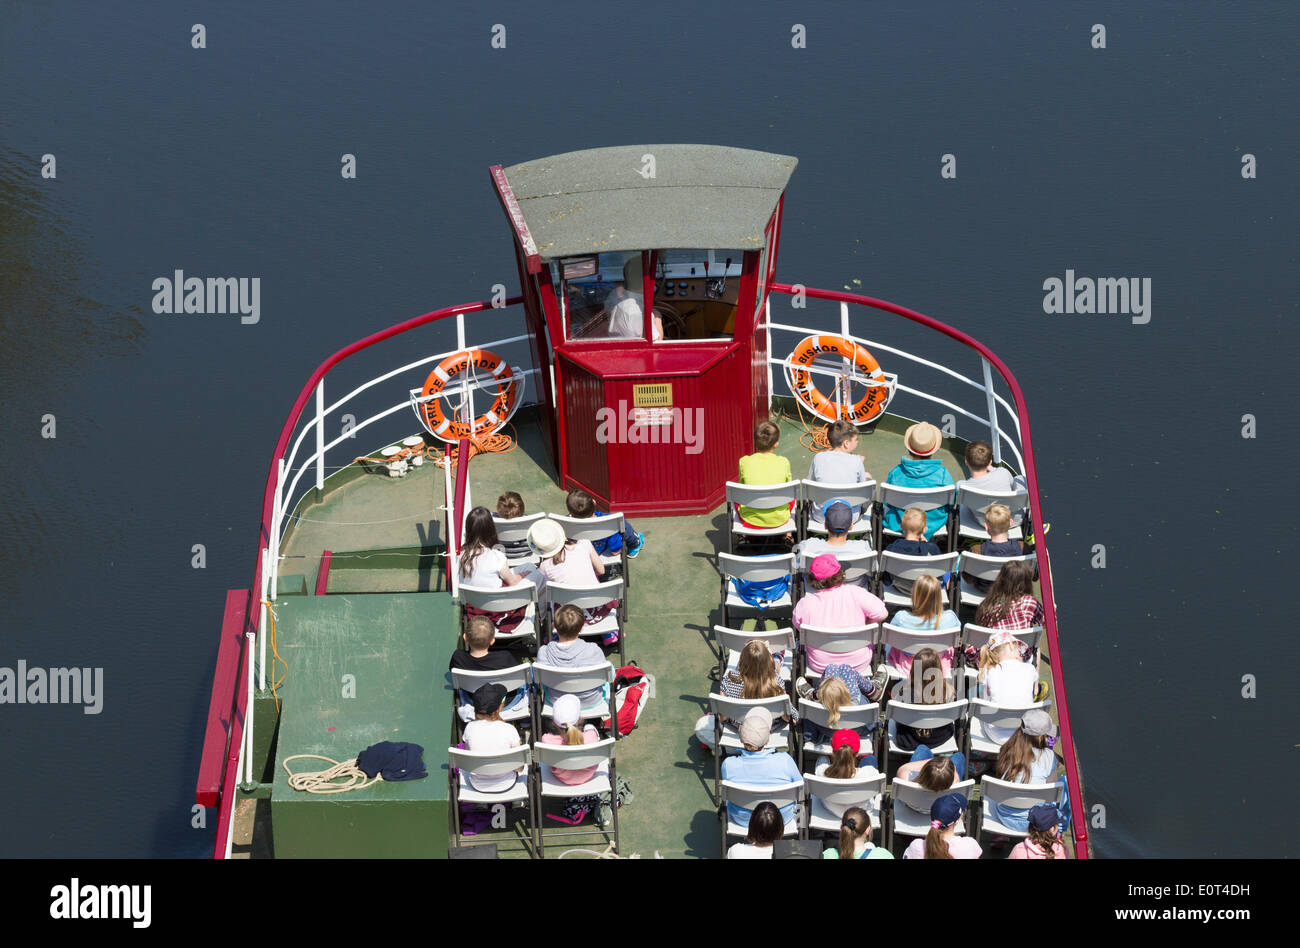 Durham Uk 19th May 2014 Schoolchildren On River Cruise On The